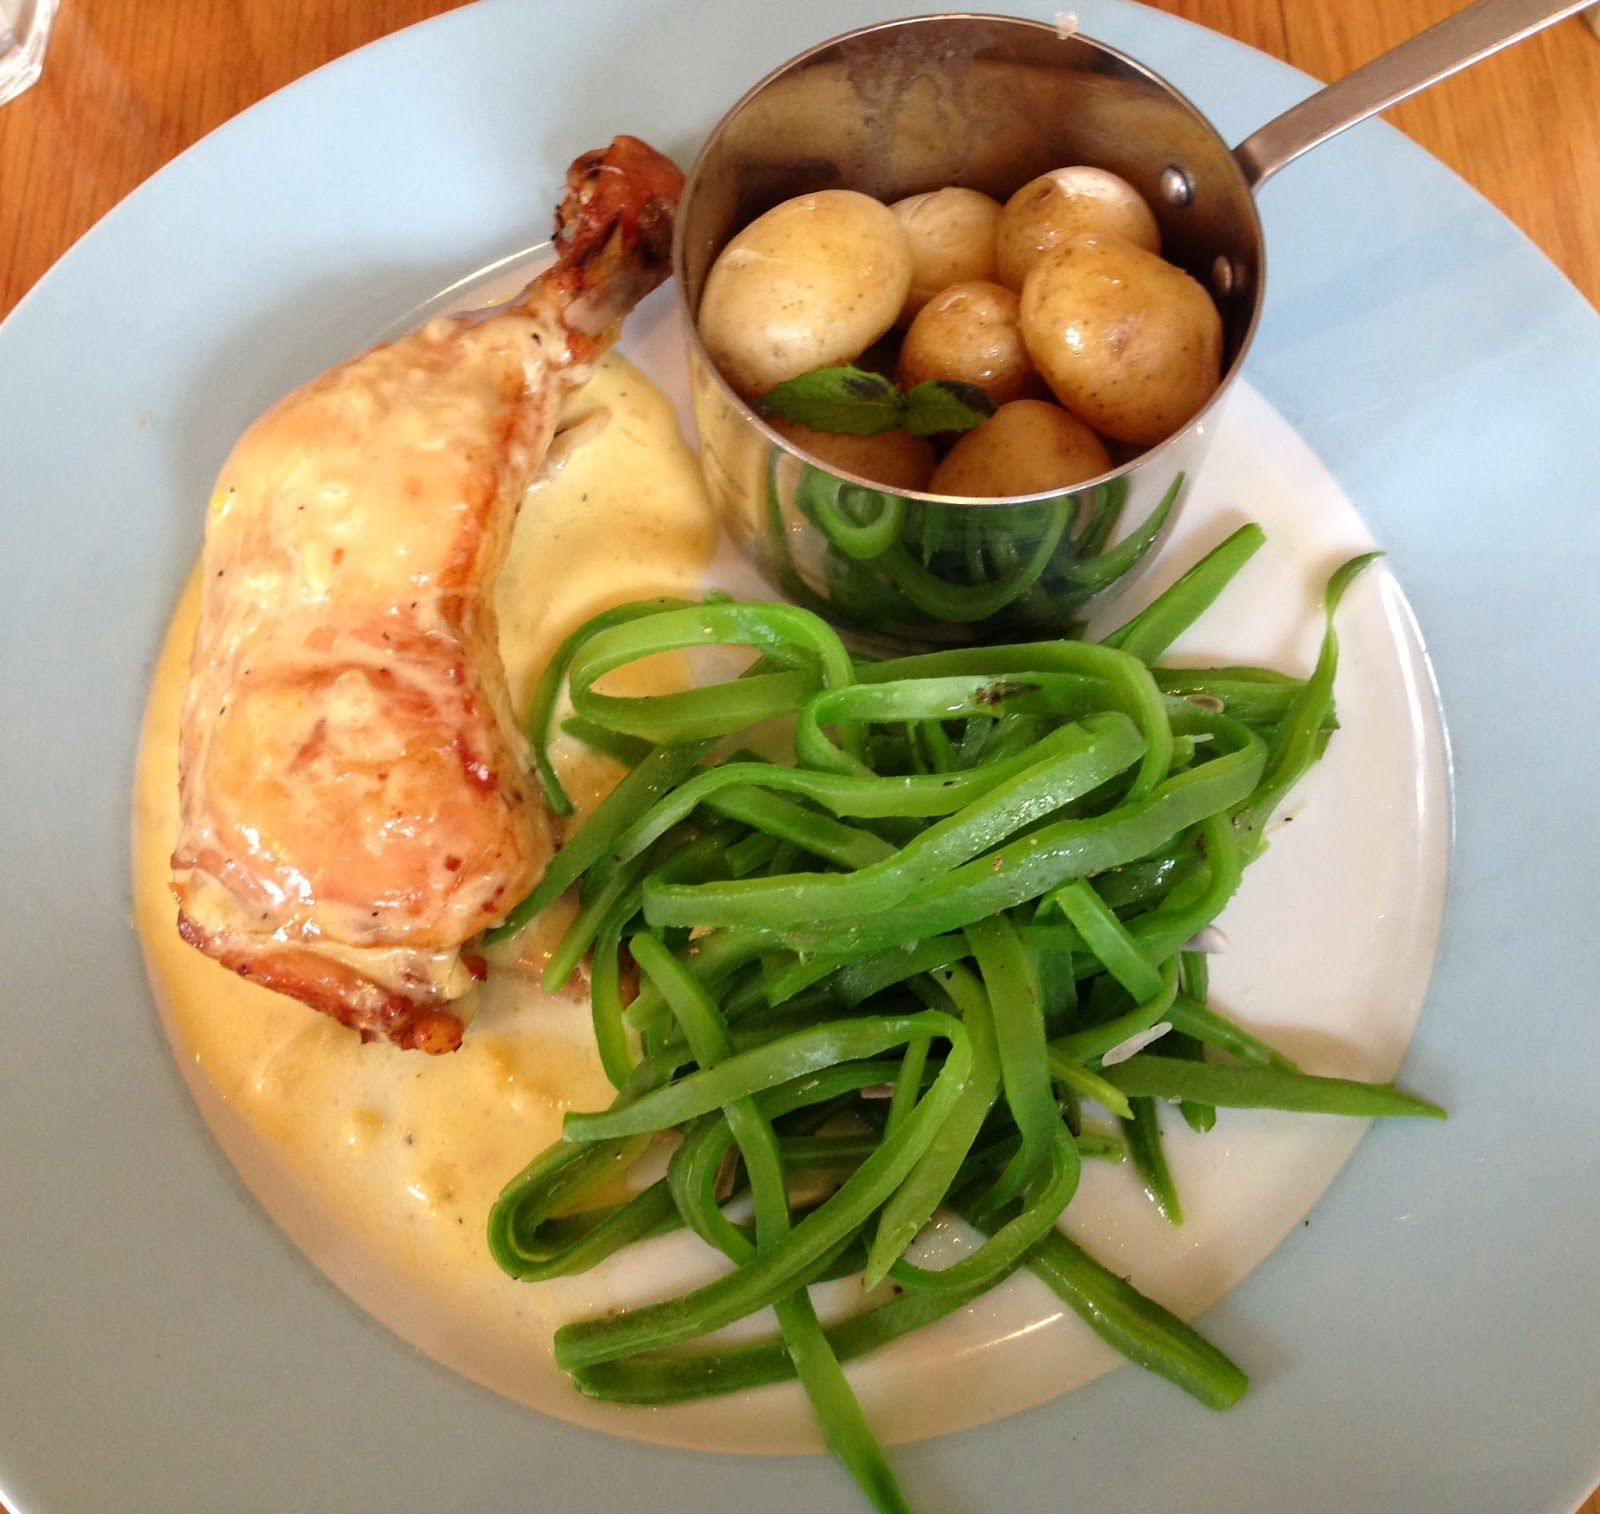 Chicken and white wine sauce with new potatoes and green beans